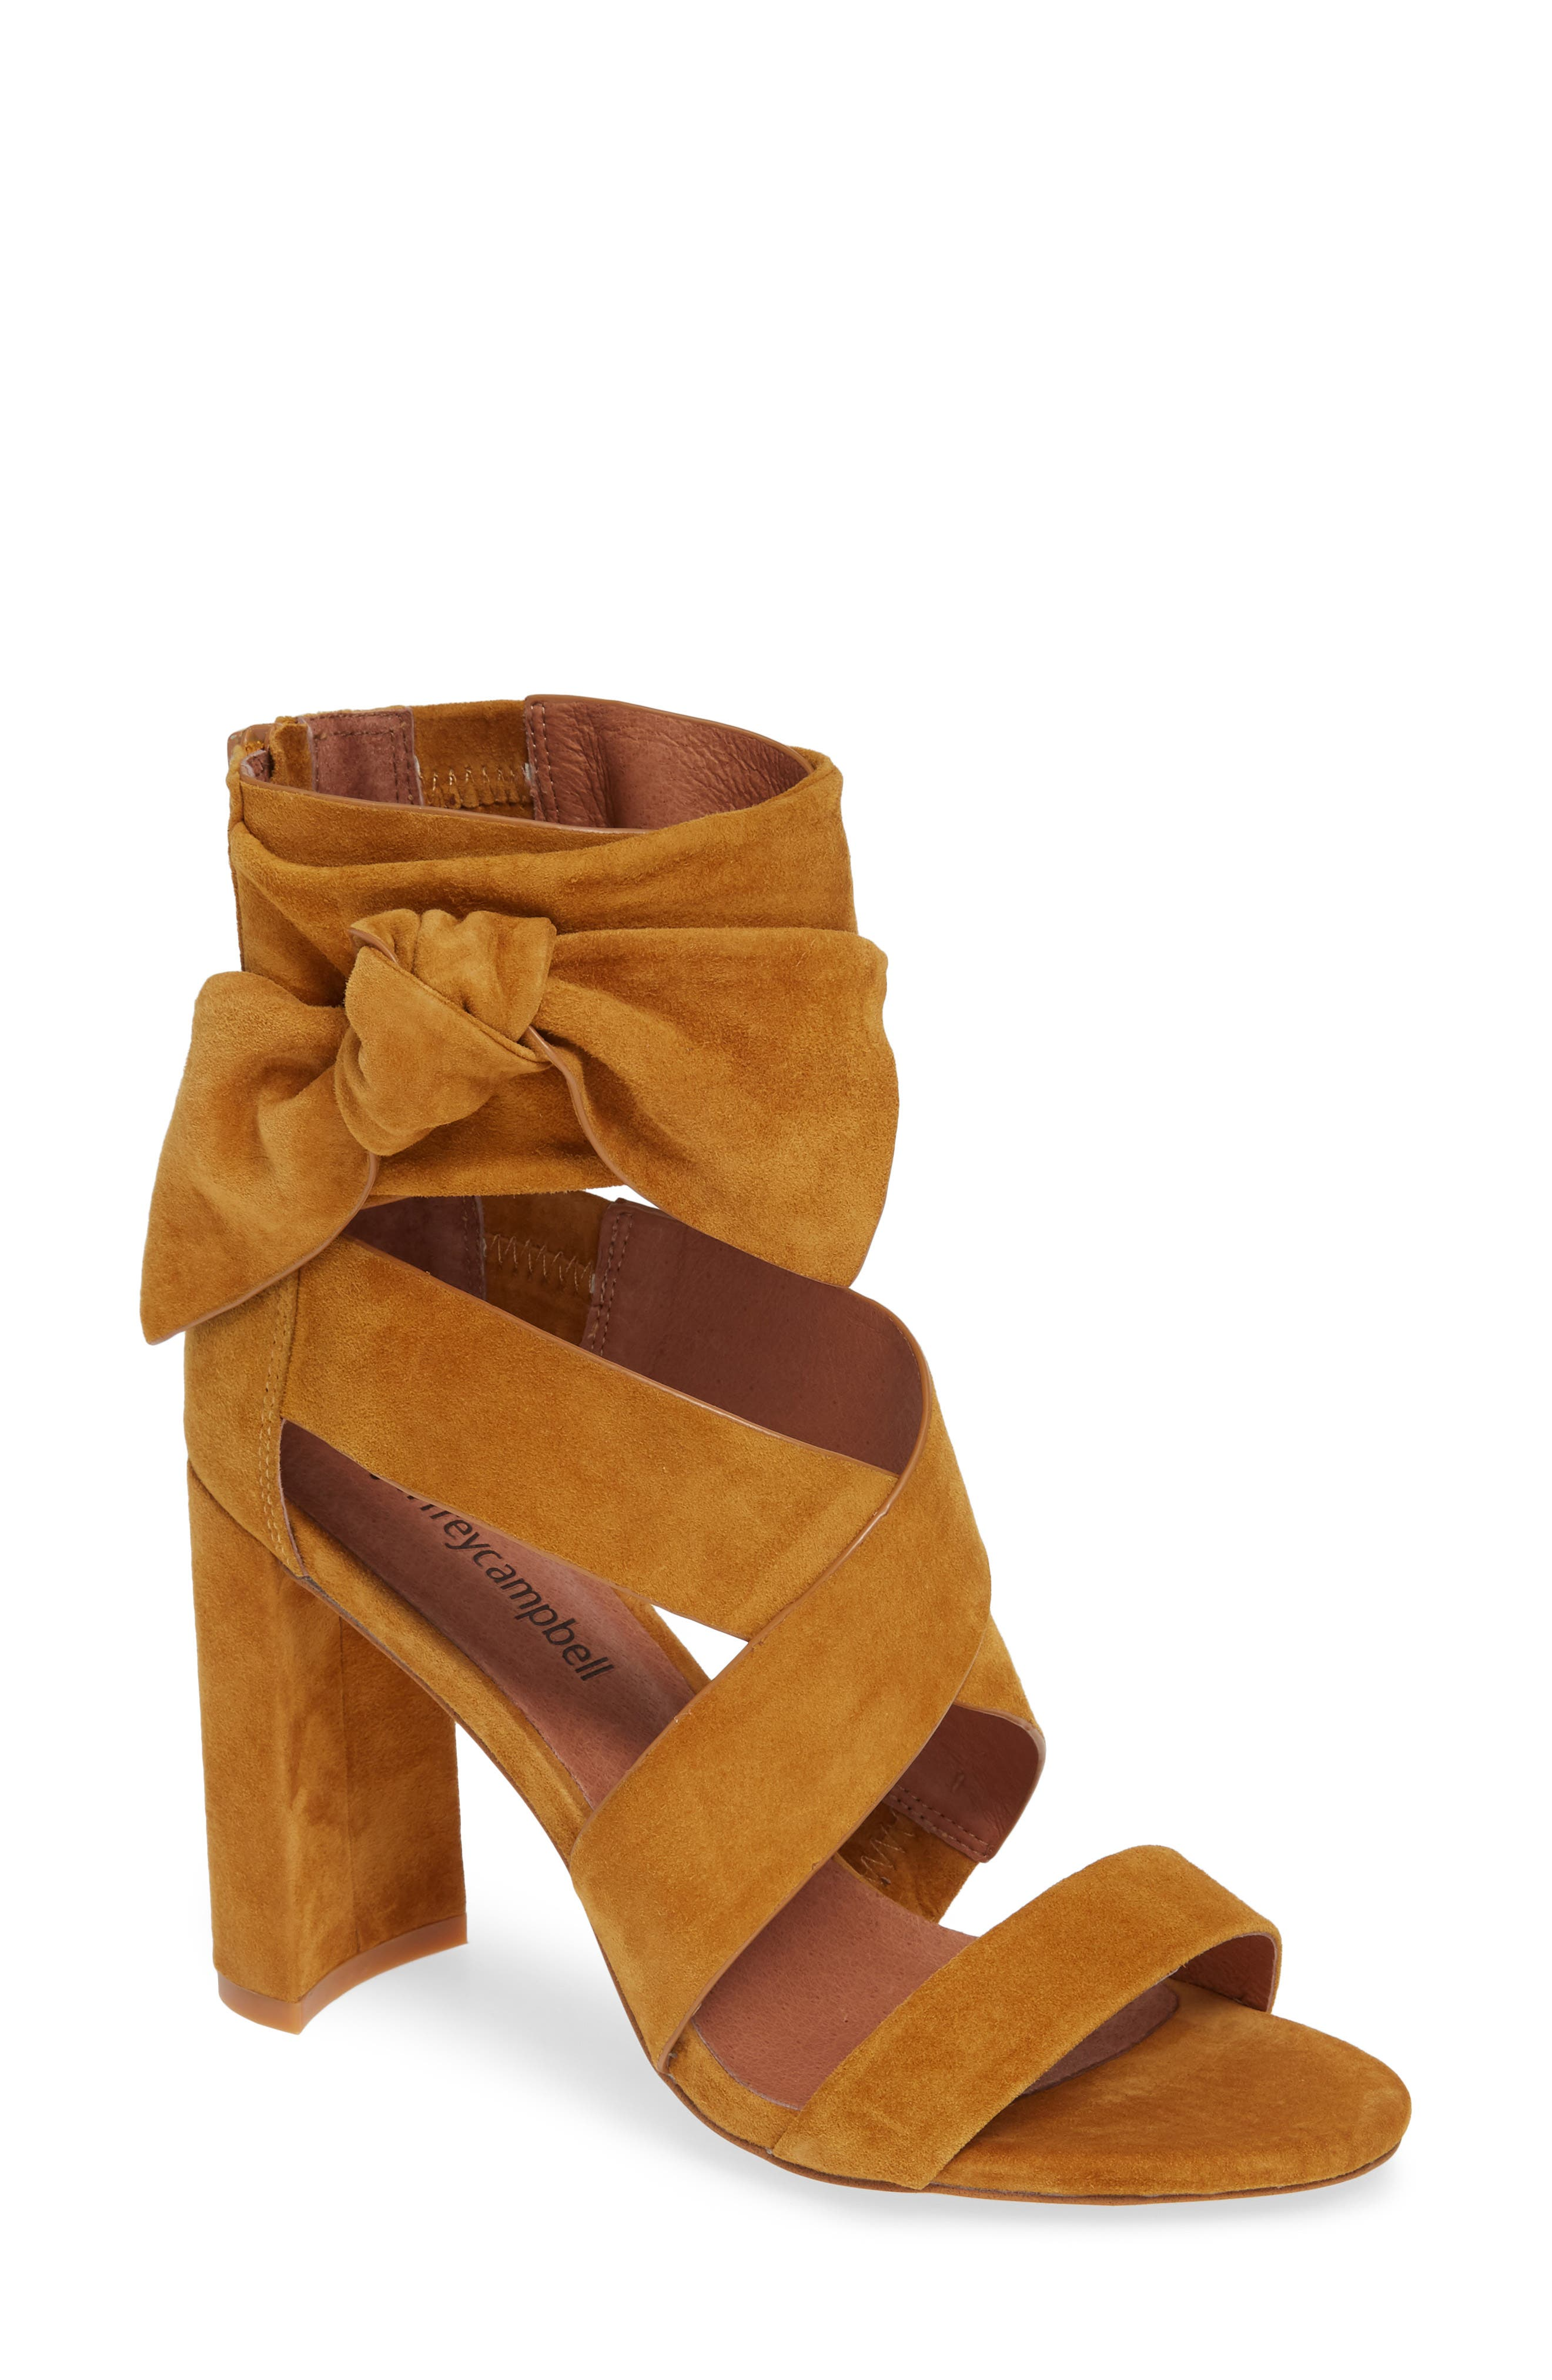 Despoina Sandal,                             Main thumbnail 1, color,                             722